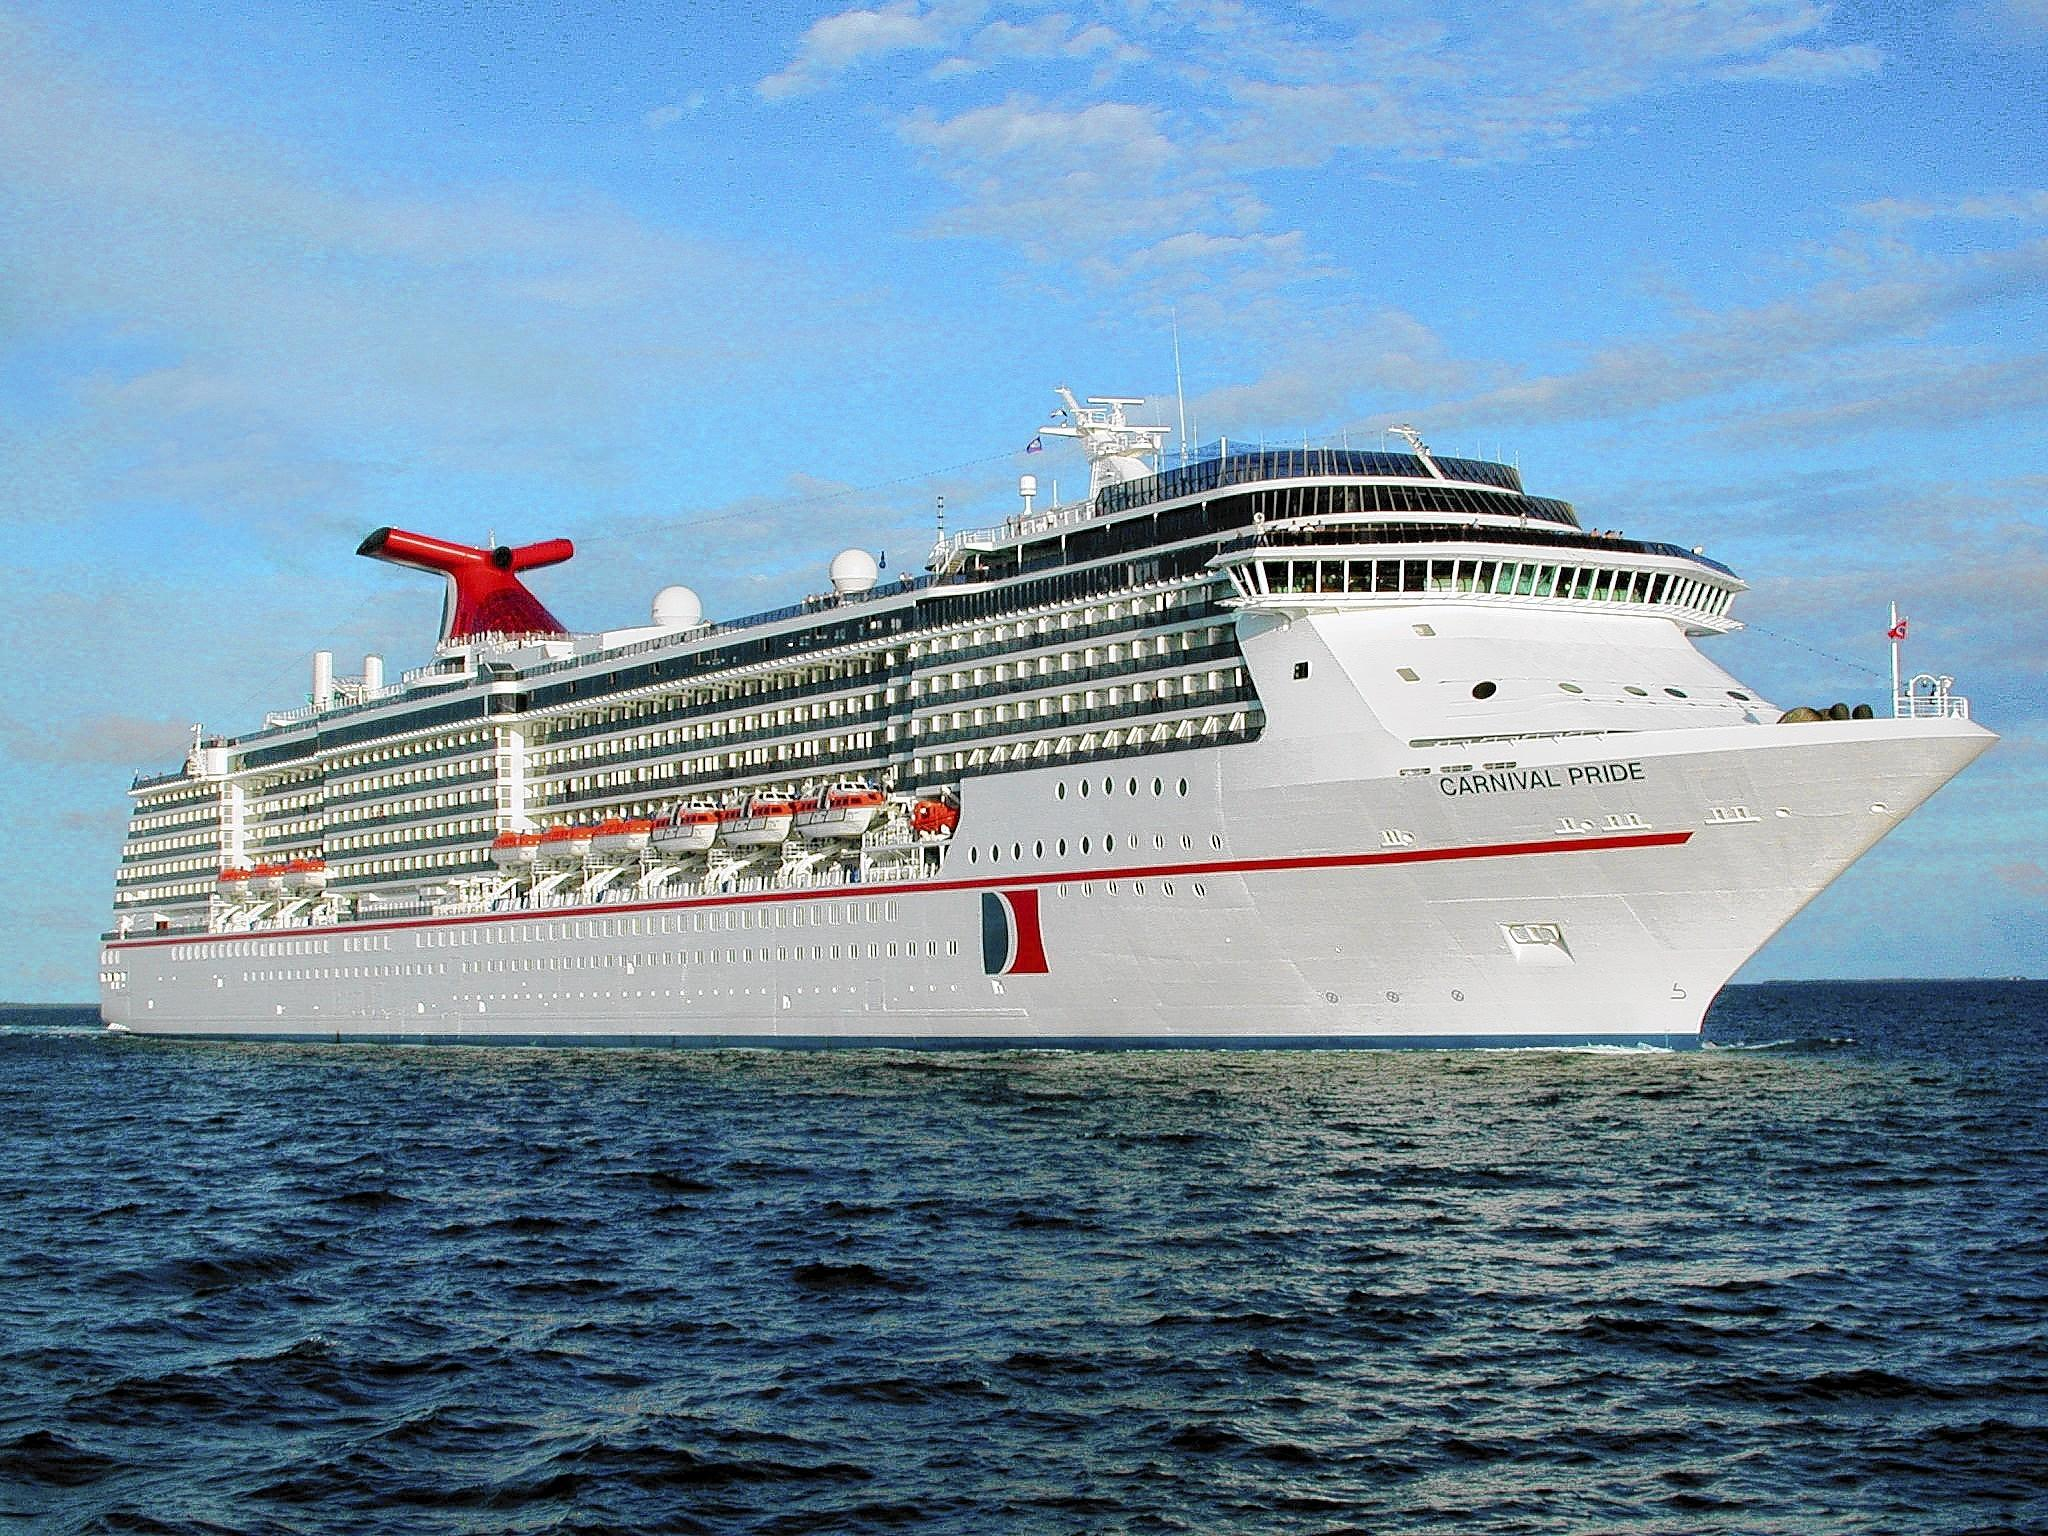 Carnival Cruises From Baltimore - Tribunedigital-baltimoresun